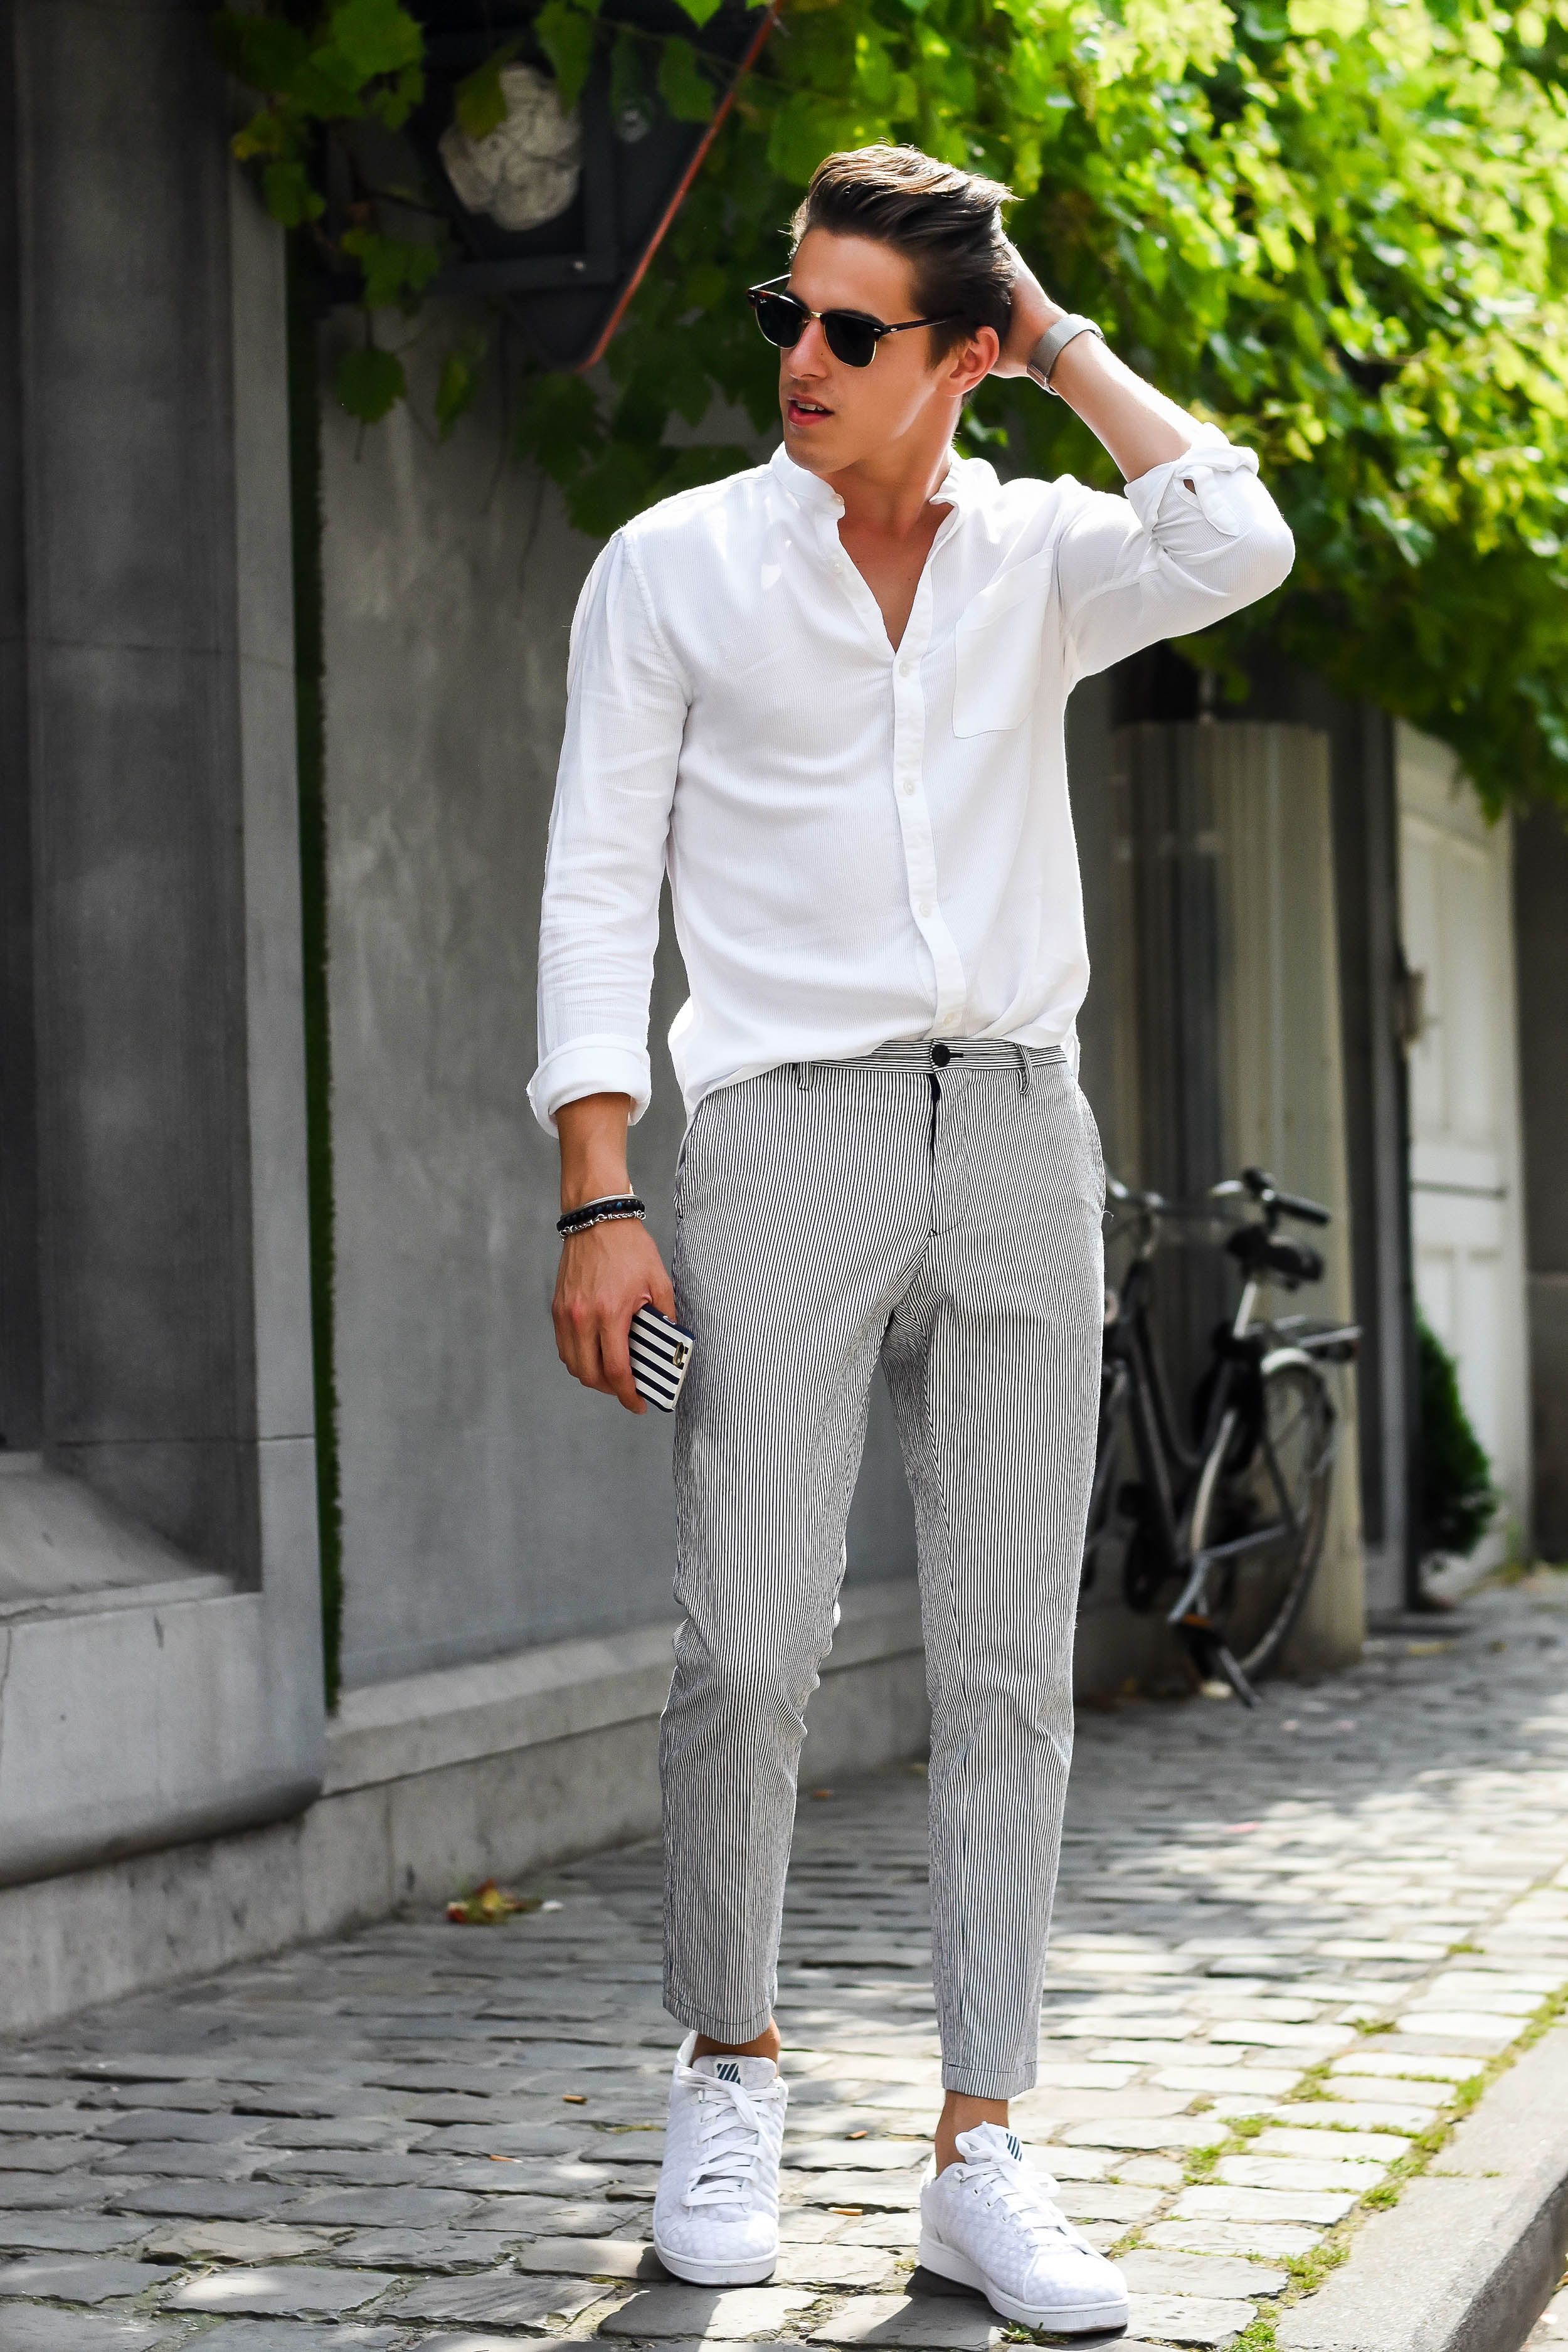 White Sneakers Men